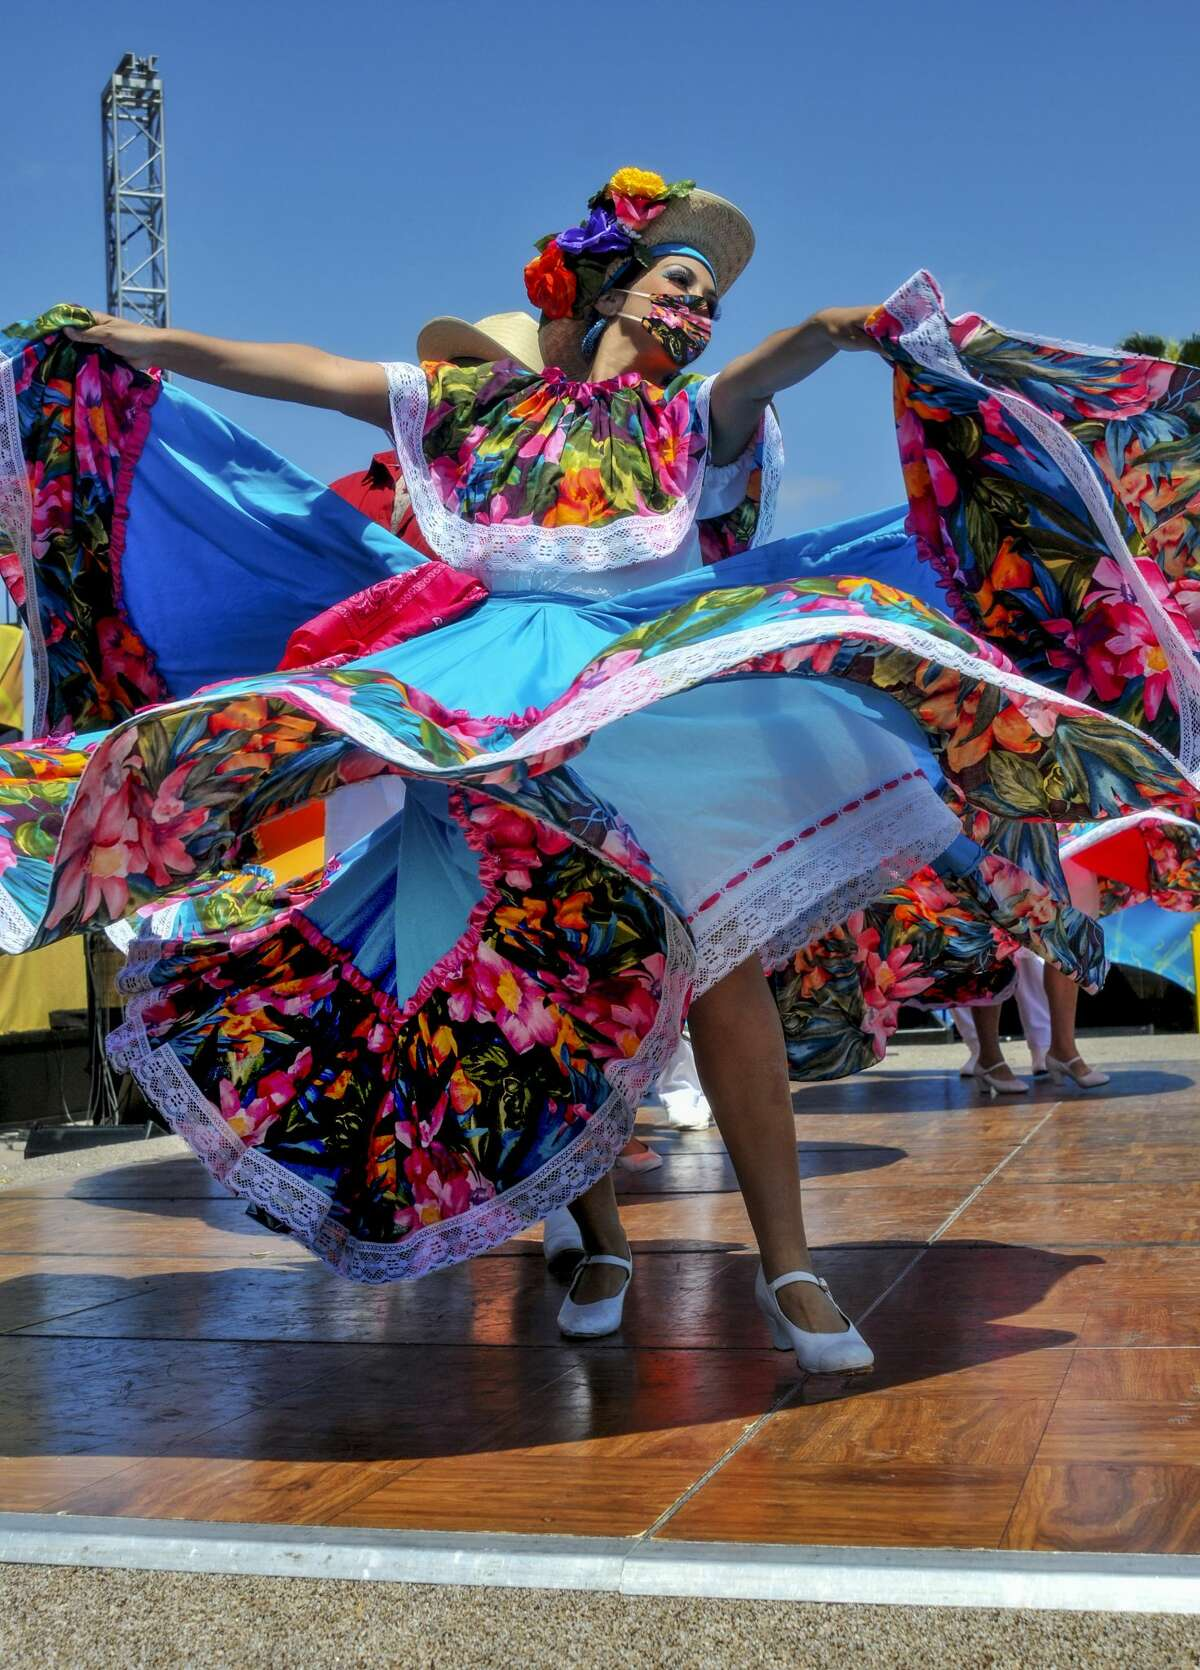 Sea World's first-ever Fiesta del Mar celebration: Fridays, Saturdays, and Sundays from Nov. 6-15.  The water park will have entertainment like mariachi bands,